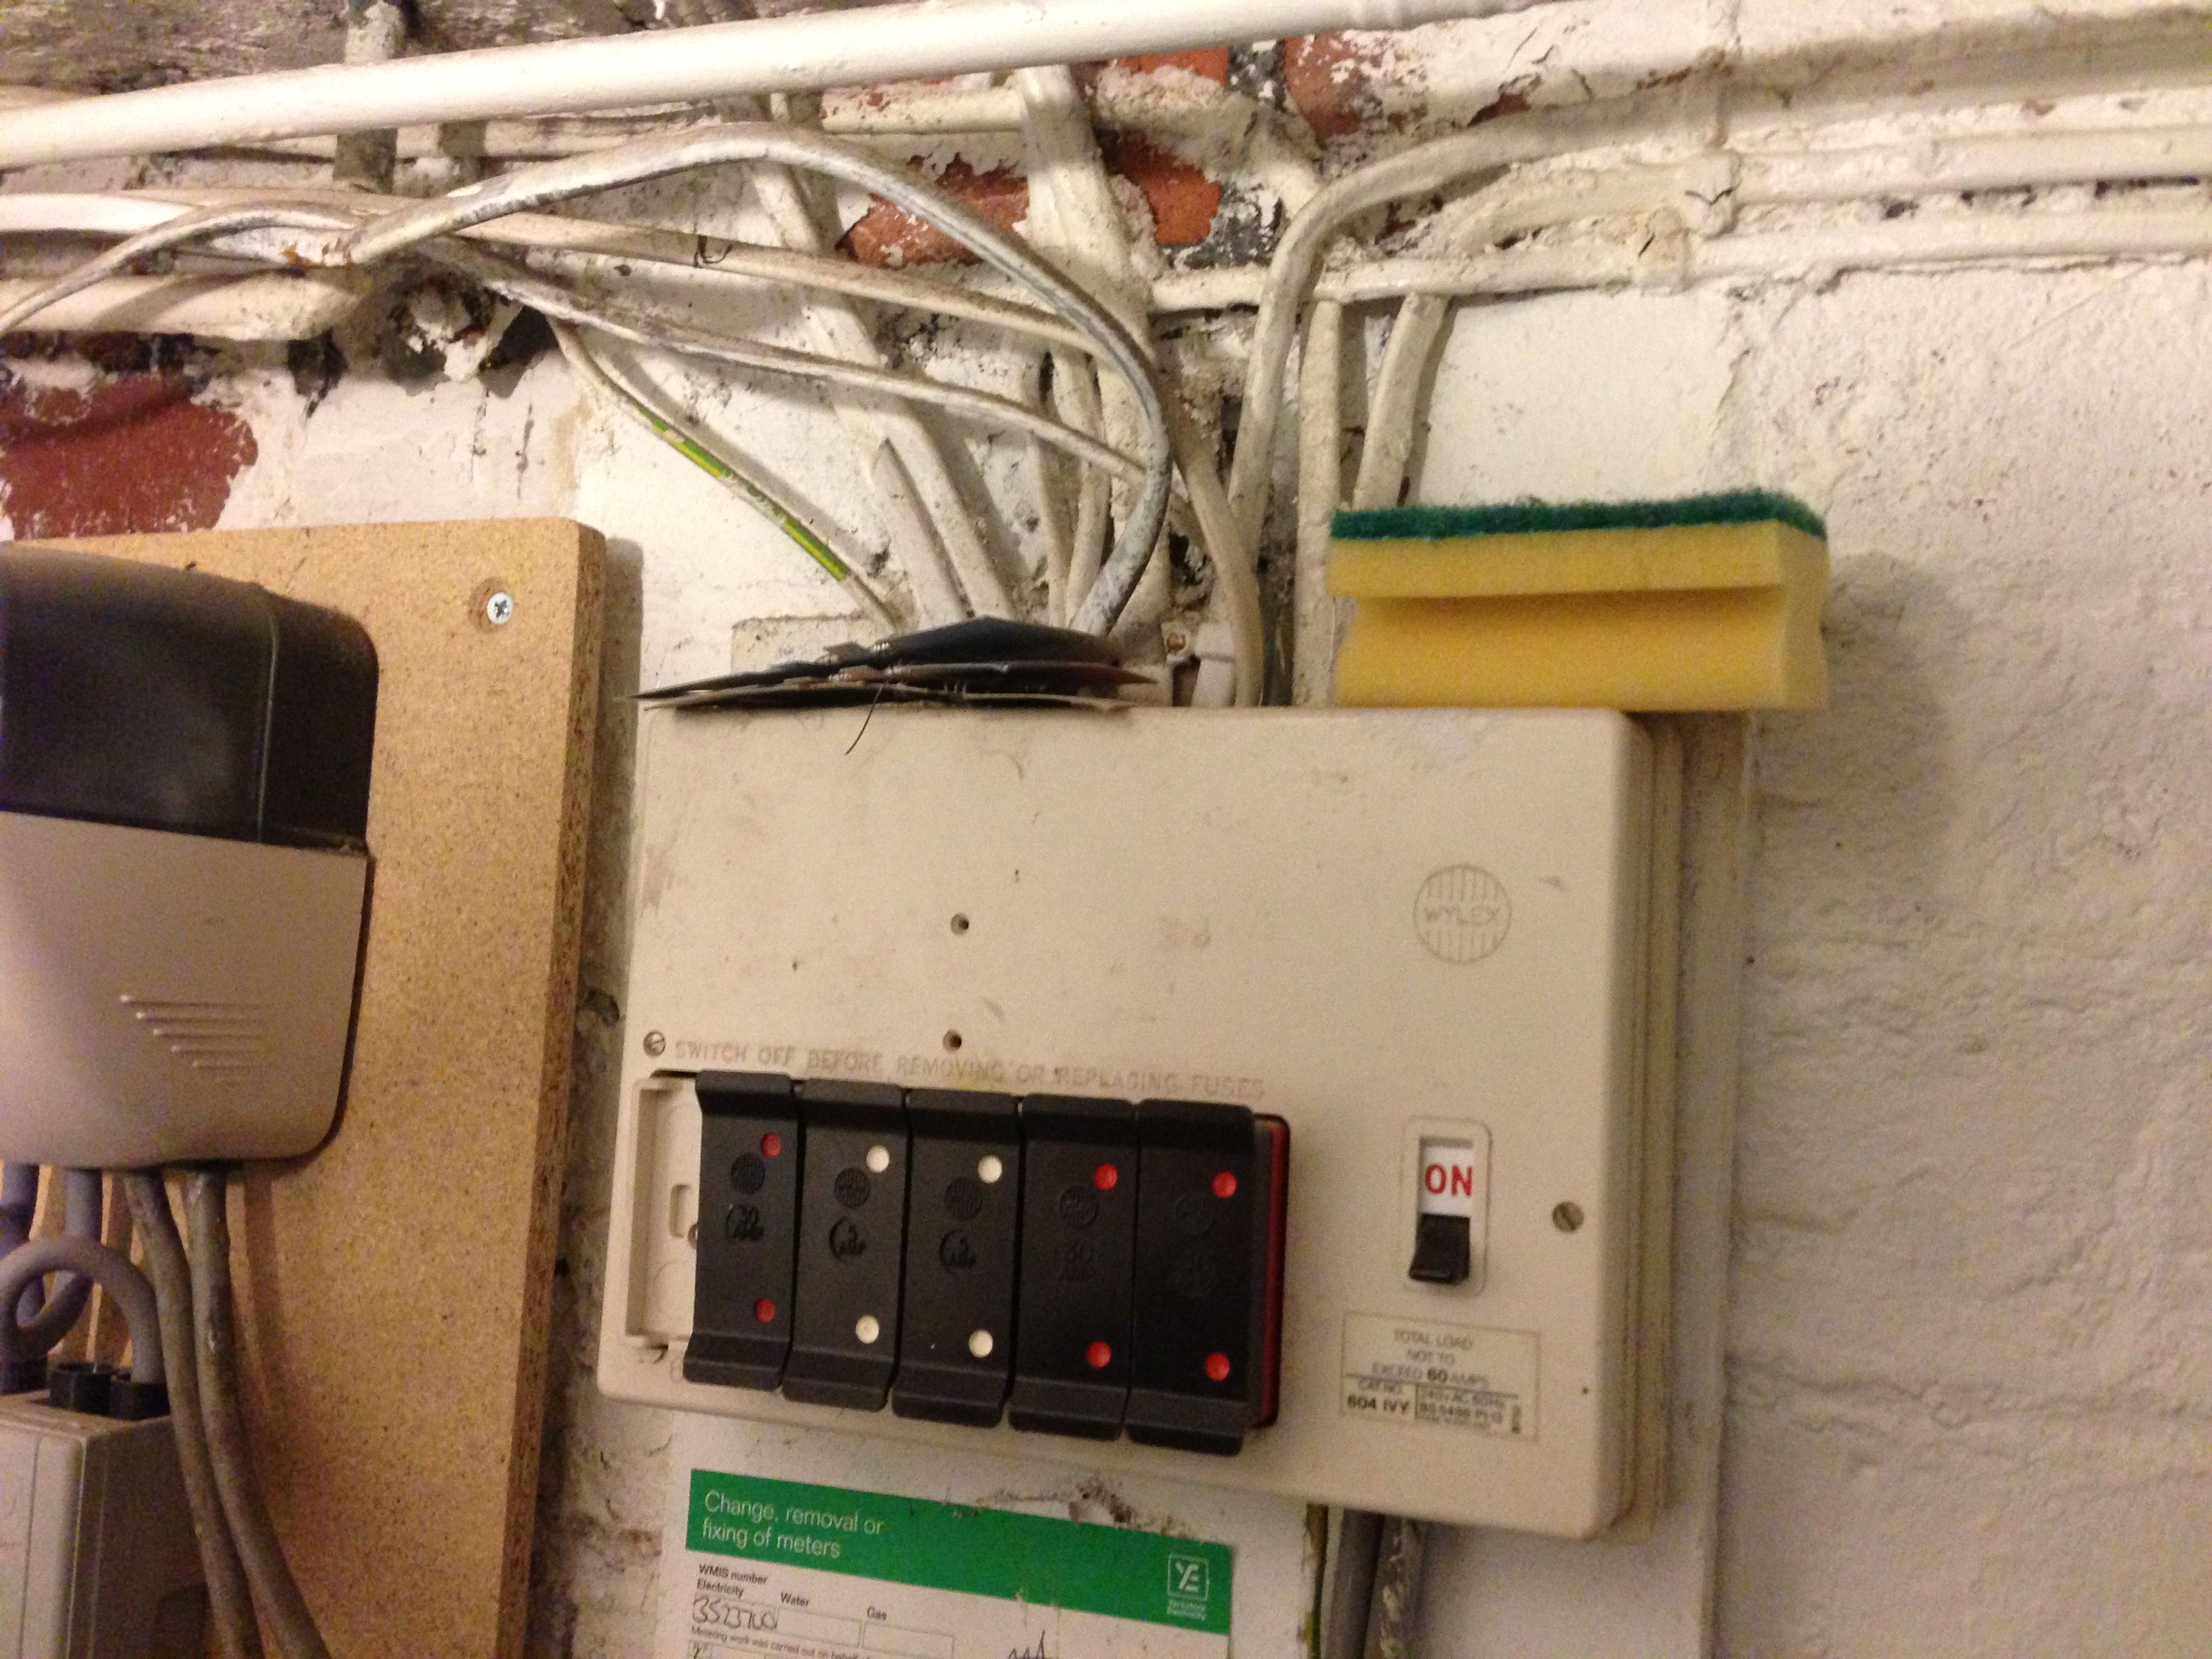 New electrical fuse board or consumer unit Sheffield UK. A job to replace  this old